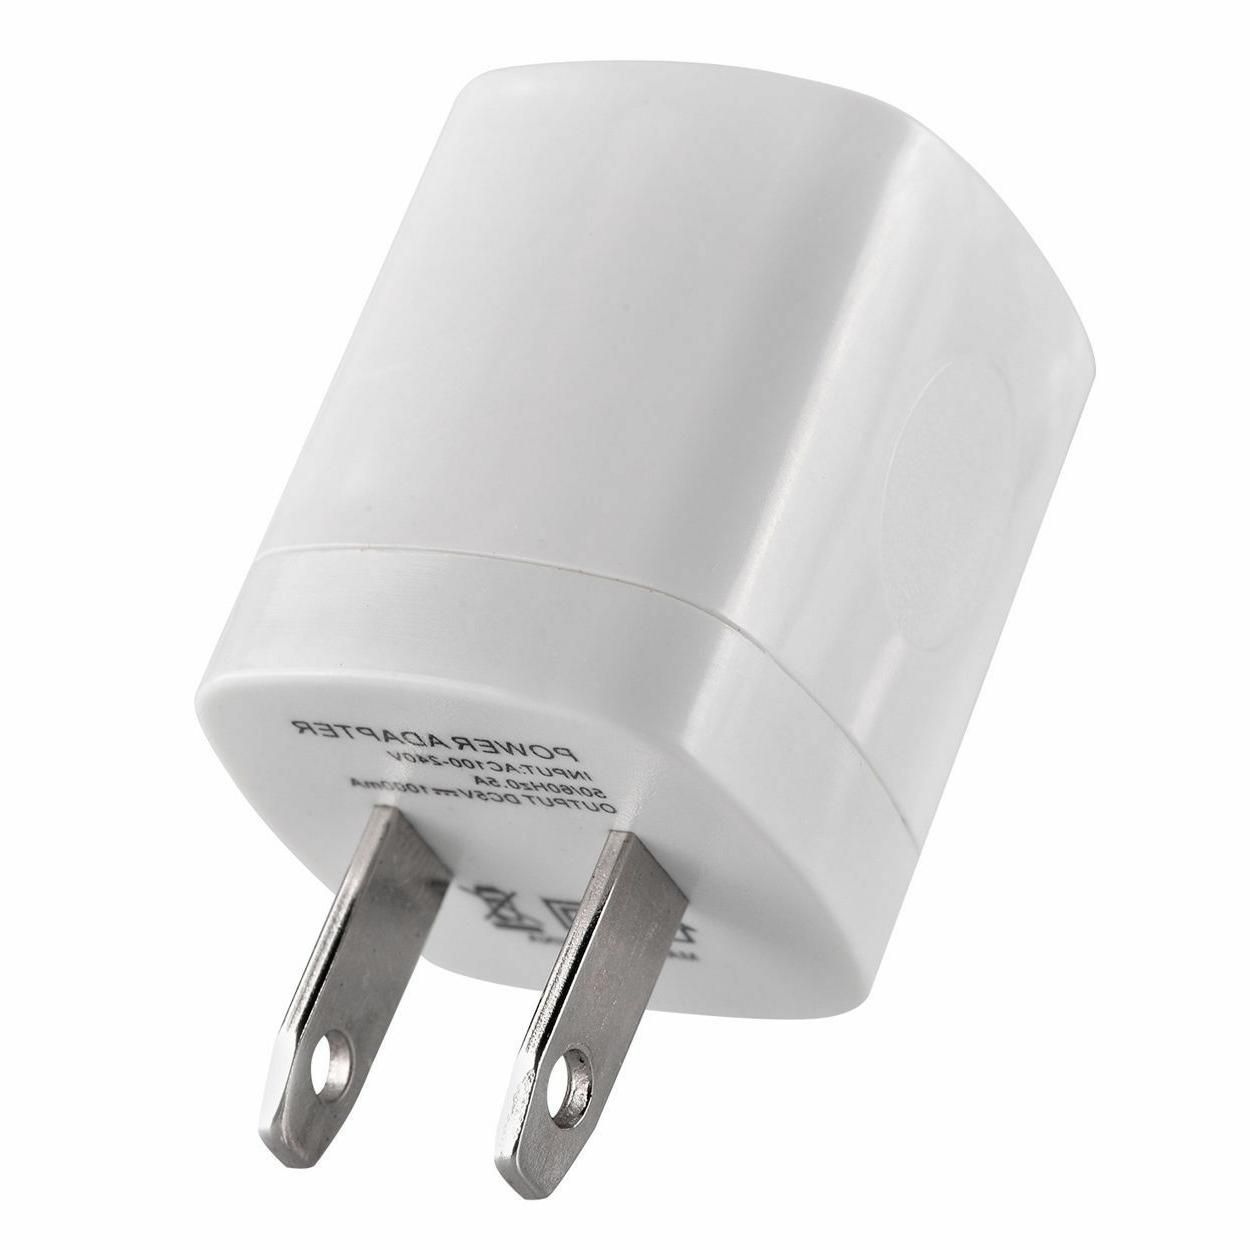 3x Wall Charger Power Adapter AC US Plug For iPhone Samsung